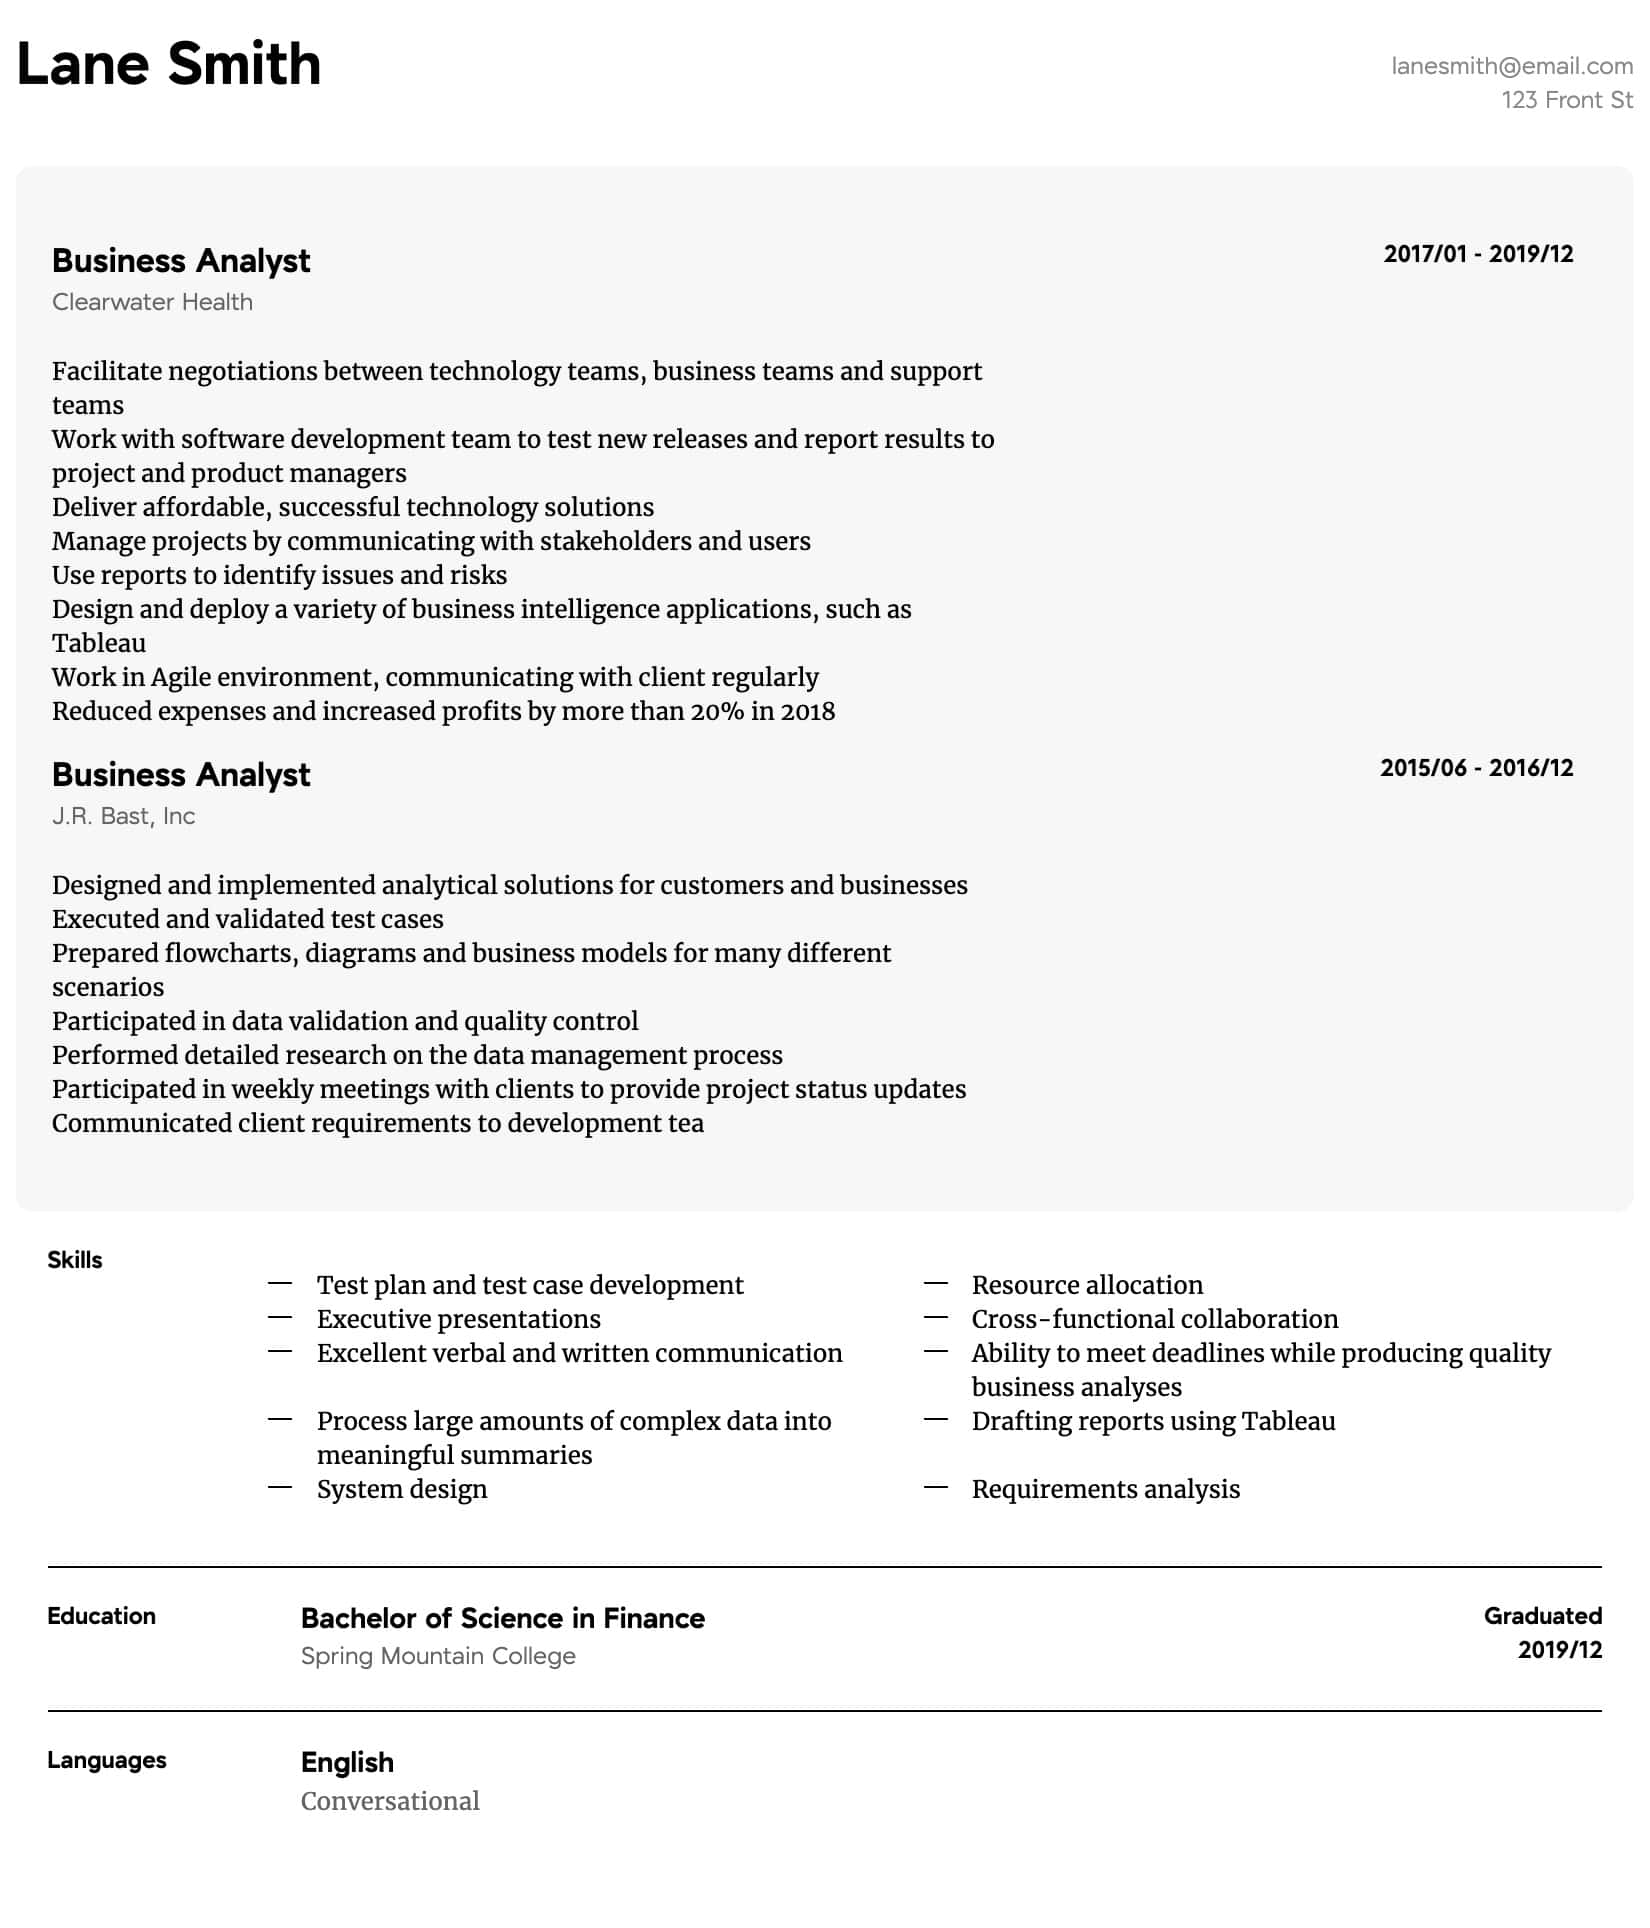 business analyst resume samples all experience levels excellent intermediate cyber Resume Excellent Business Analyst Resume